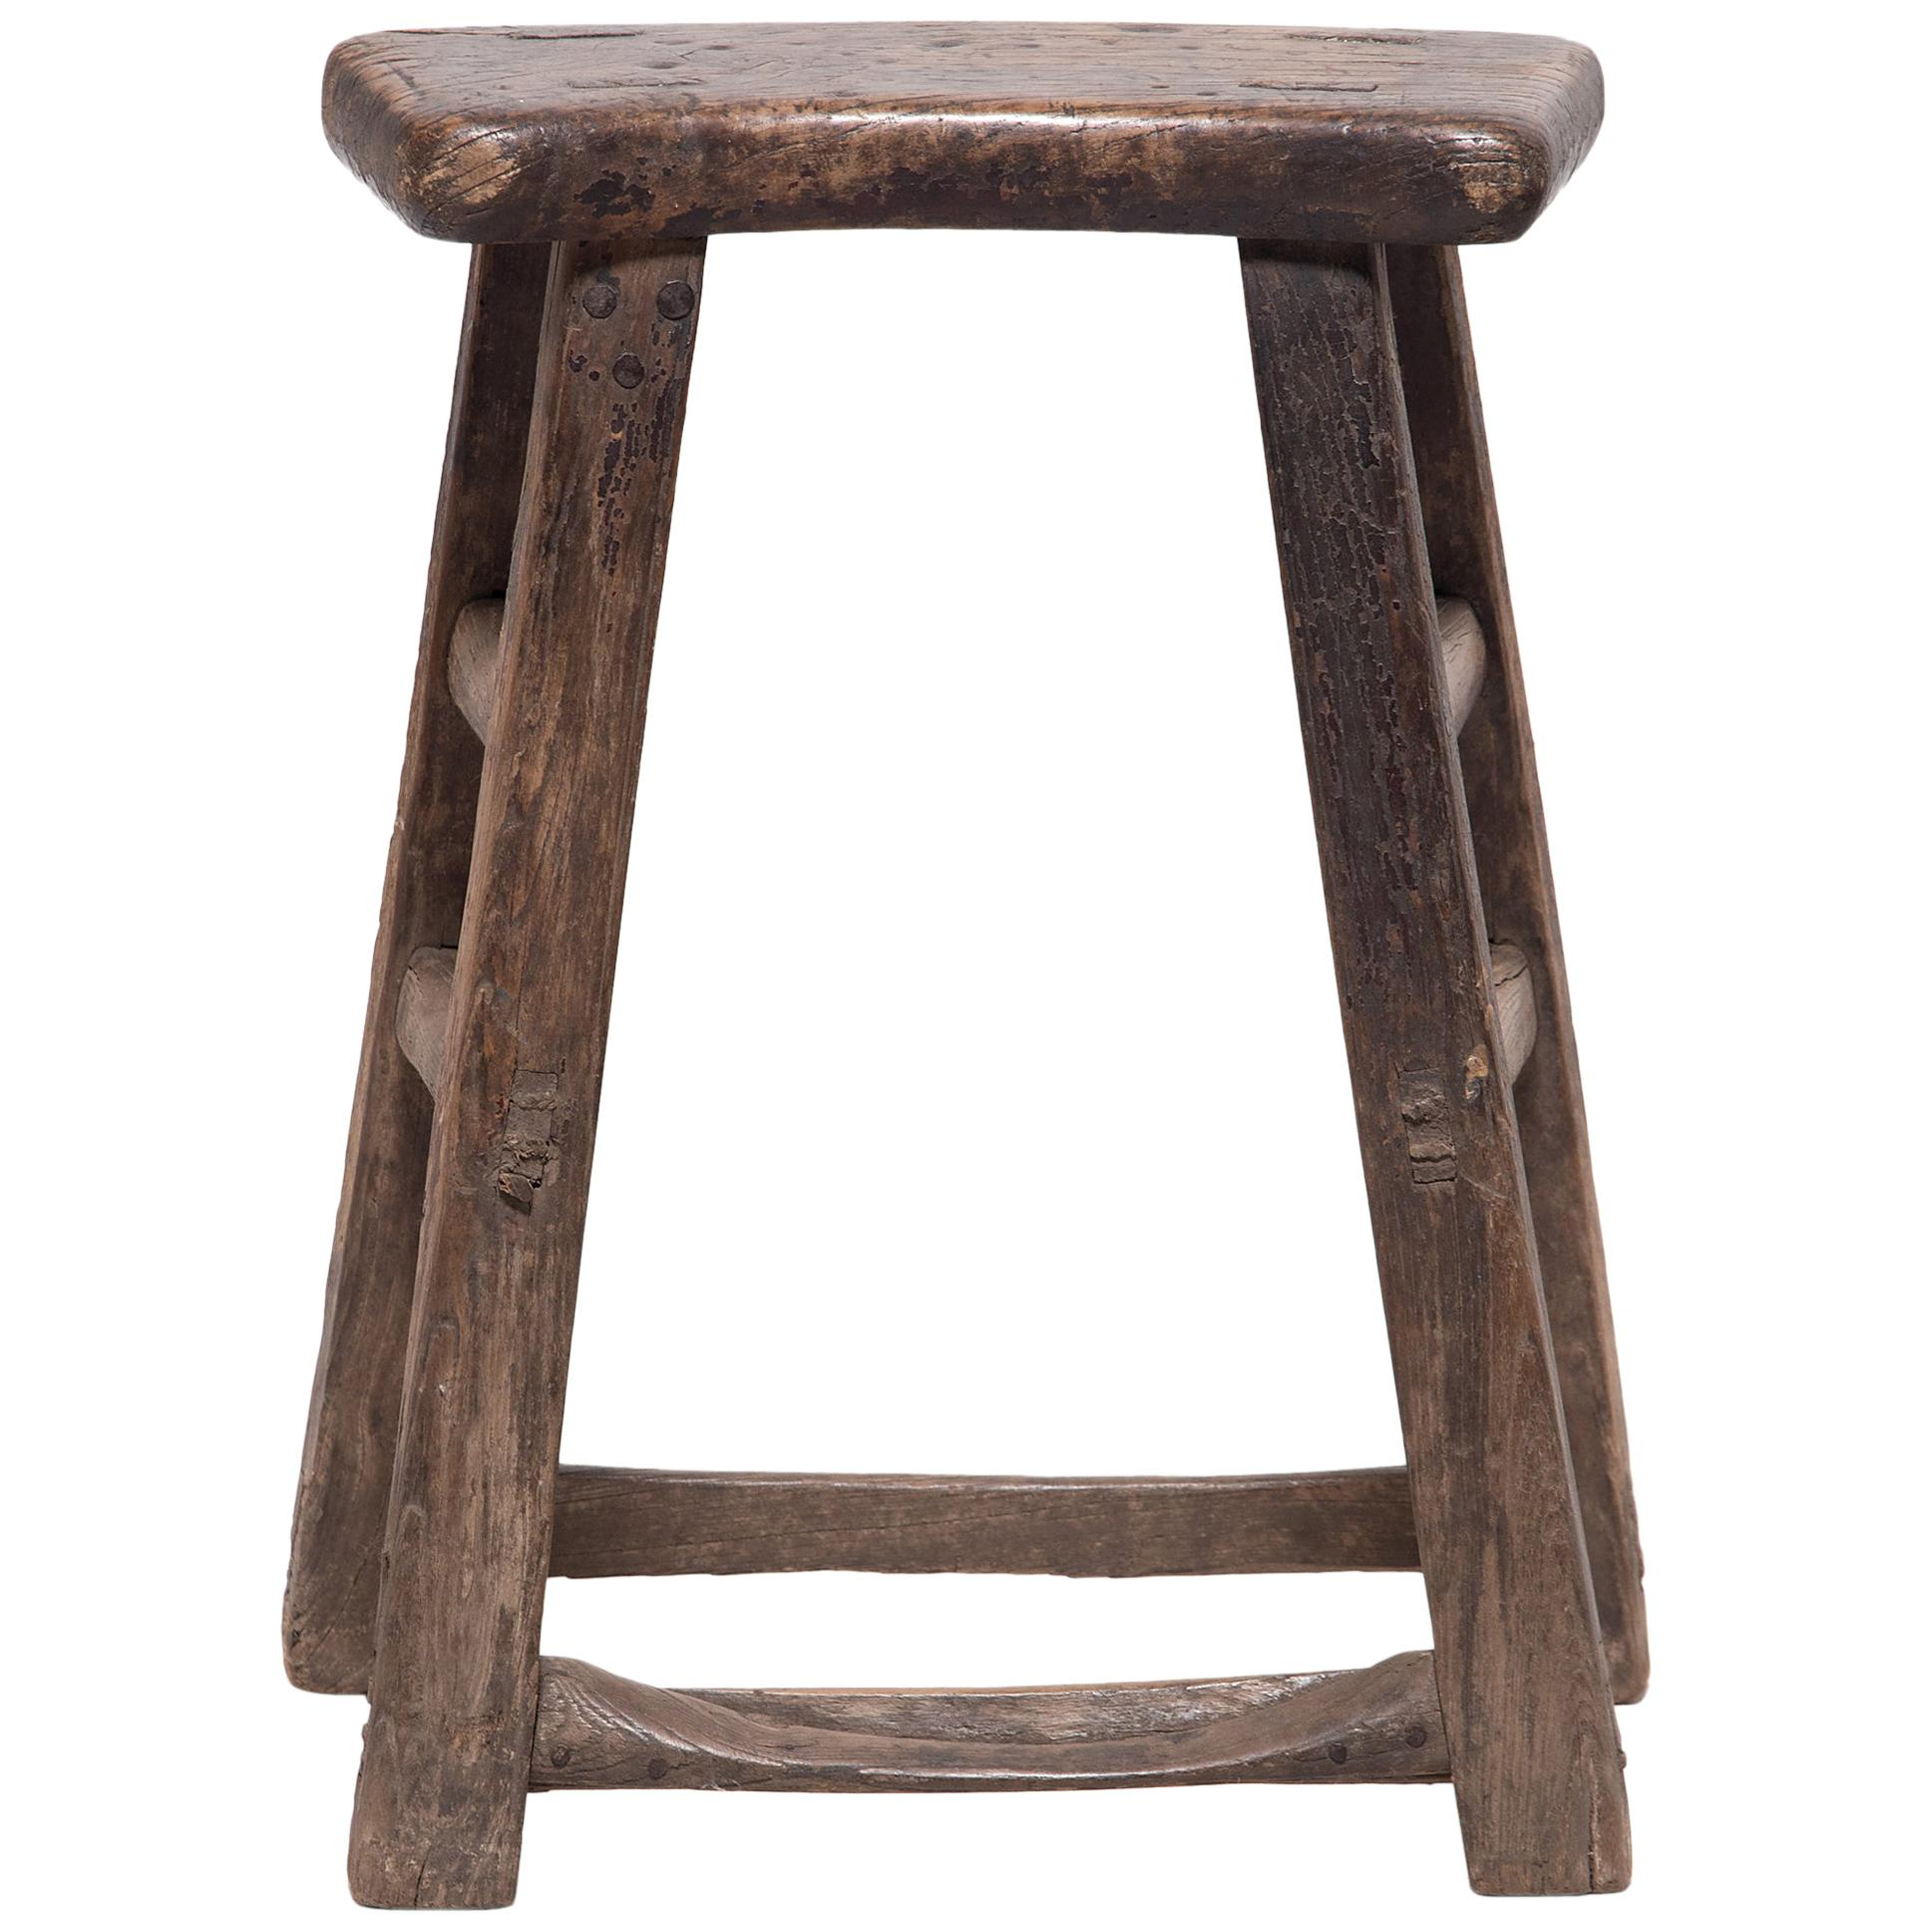 Provincial Chinese Fan Stool, circa 1900